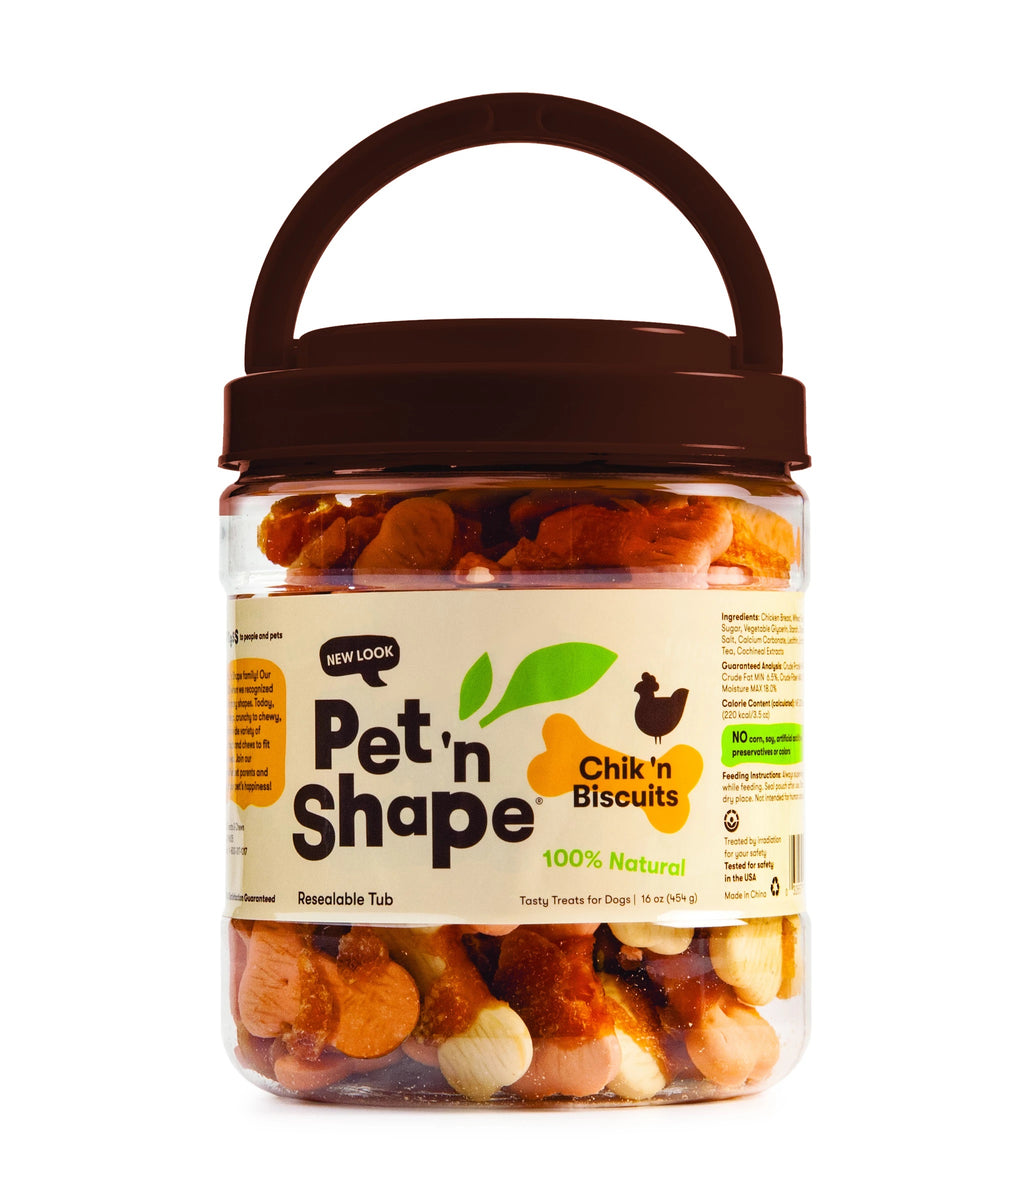 Pet N Shape Chik n Biscuits